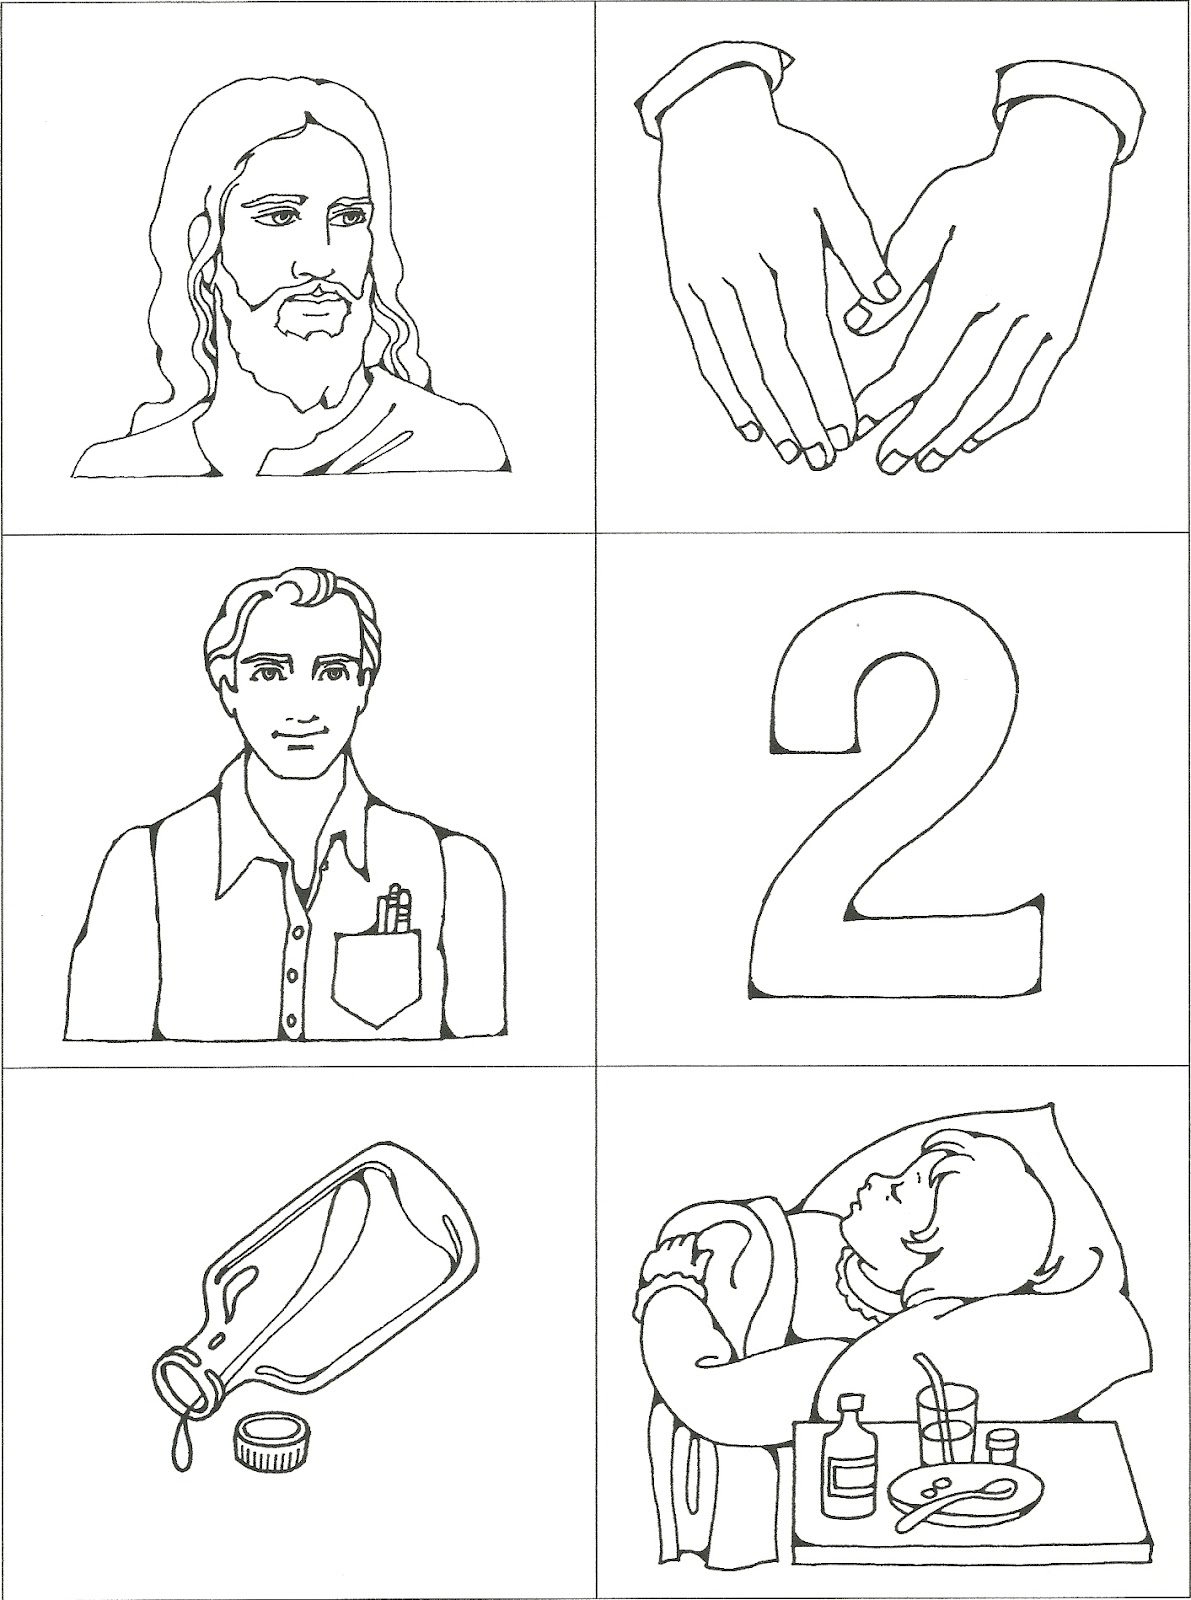 jesus heals jairus daughter coloring page - happy clean living primary 2 lesson 16